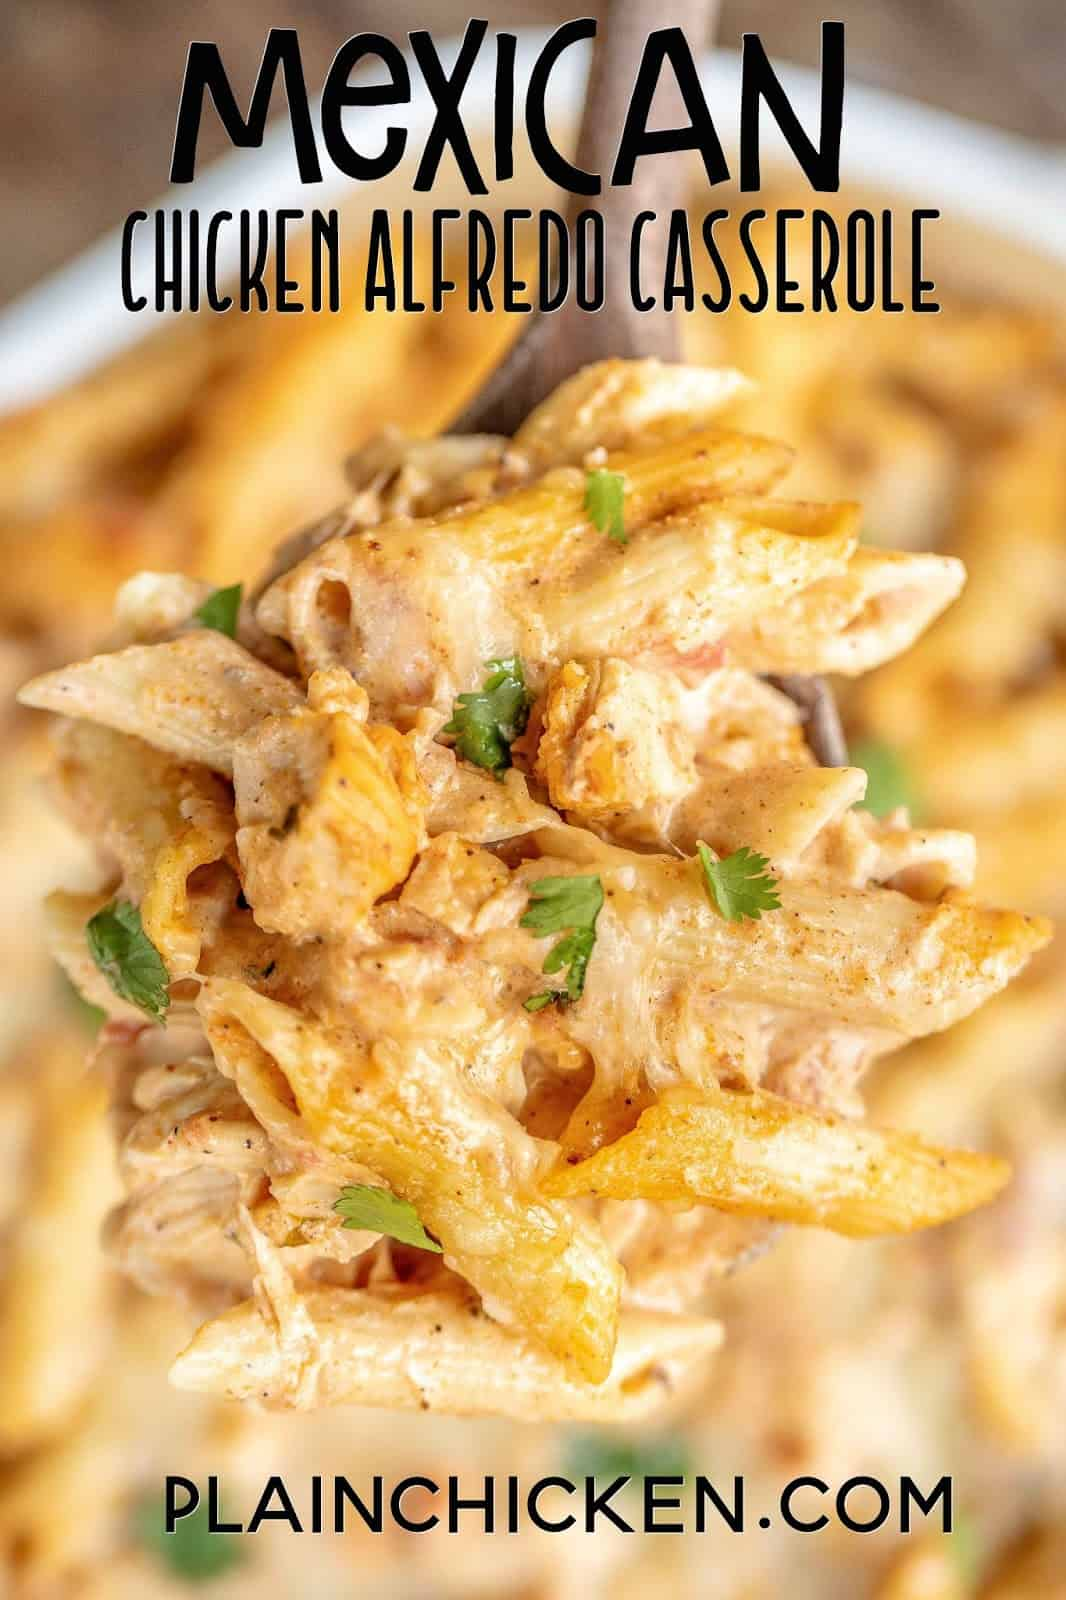 spoonful of chicken pasta casserole